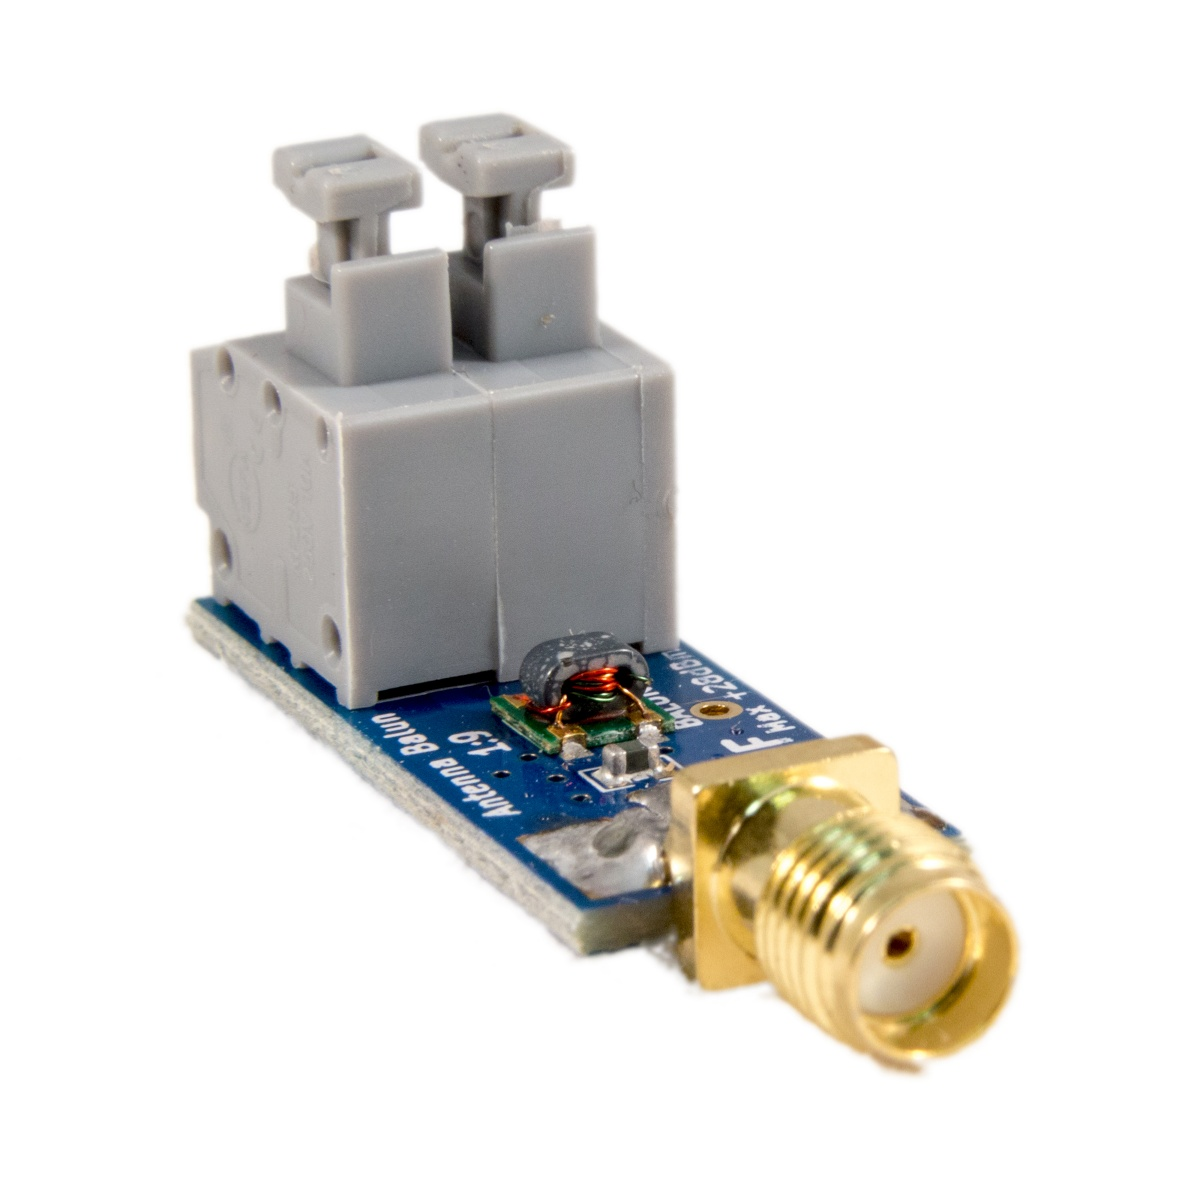 NooElec - Balun One Nine - Tiny Low-Cost 1:9 HF Antenna Balun ...